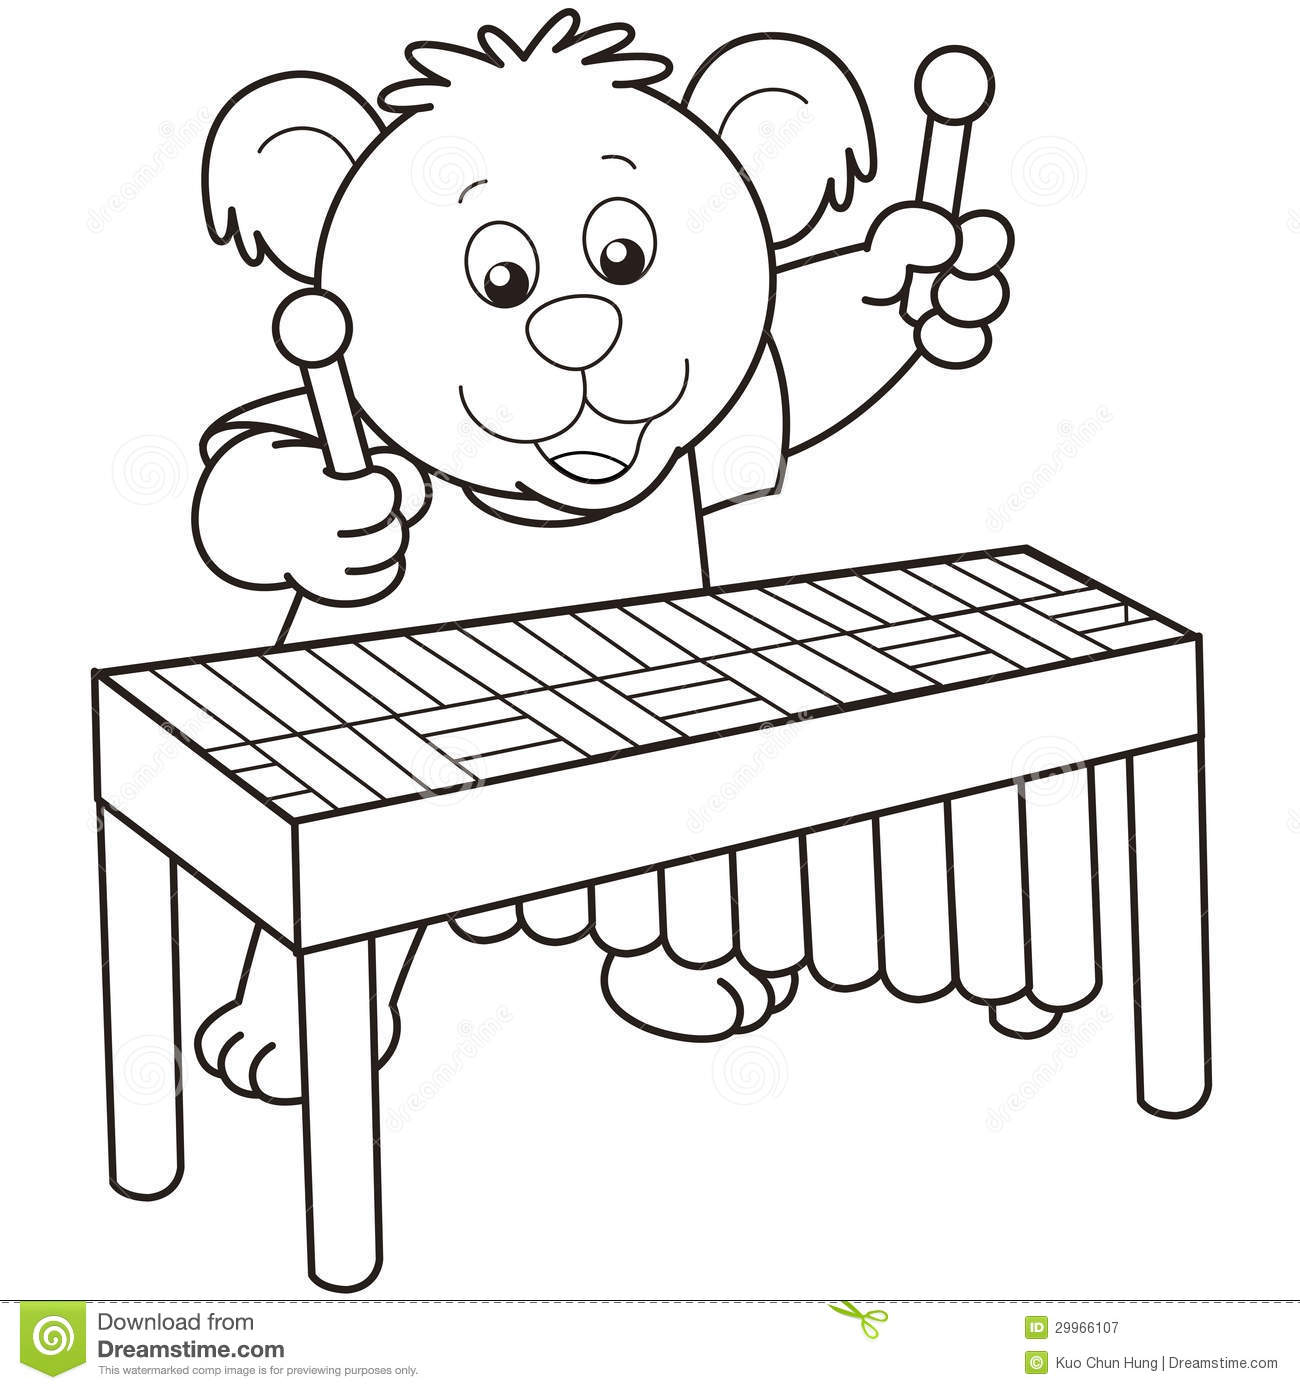 Line Art Xylophone : Cartoon bear playing a vibraphone royalty free stock